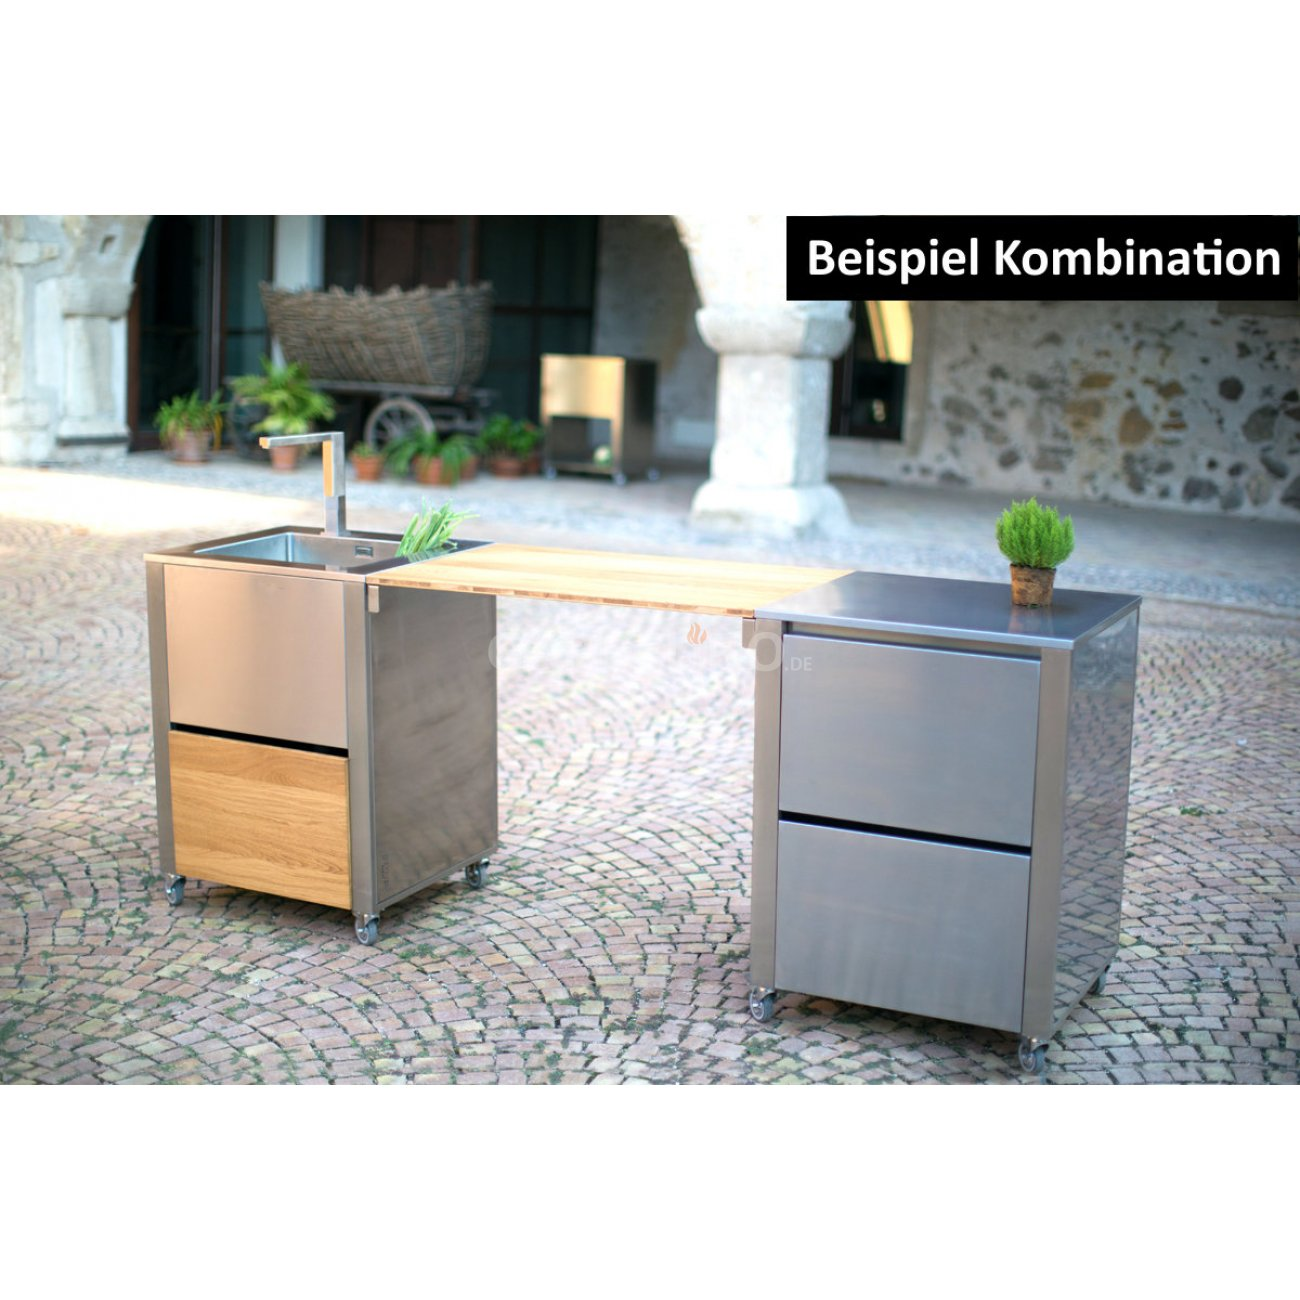 joko domus cun kitchen outdoork che mit induktionskochfeld. Black Bedroom Furniture Sets. Home Design Ideas